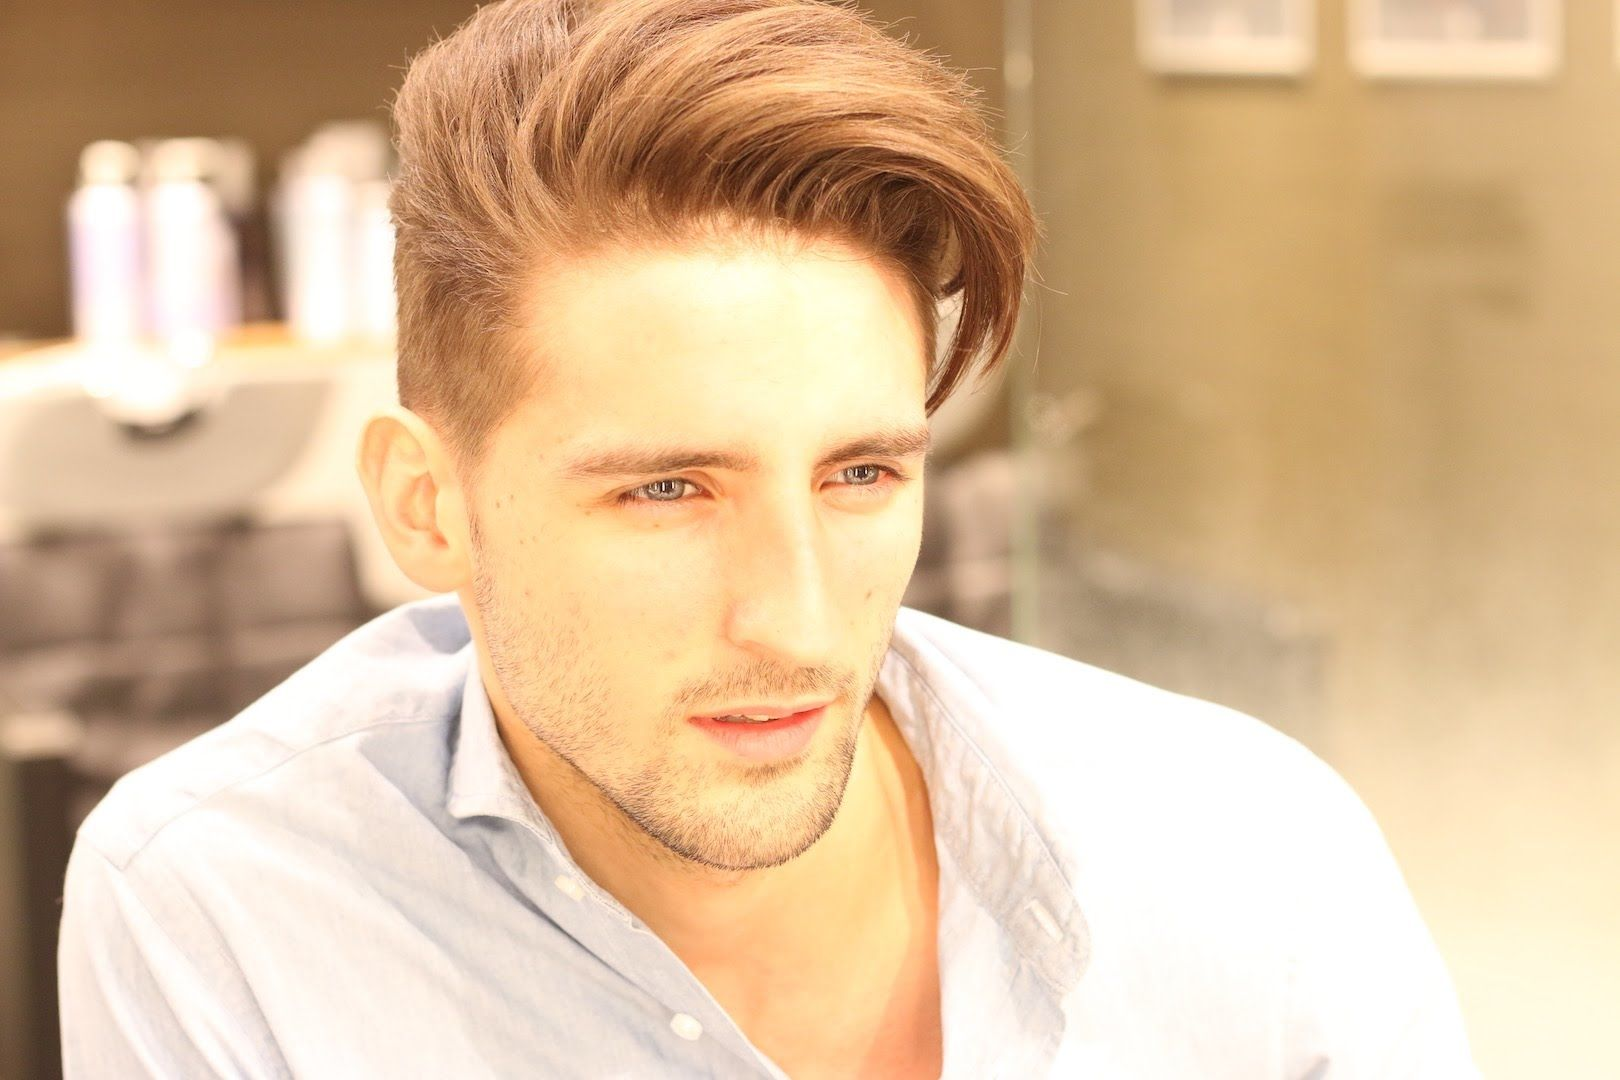 New Hairstyle For Men New Men Hairstyles Hair Styles 2016 Mens Hairstyles